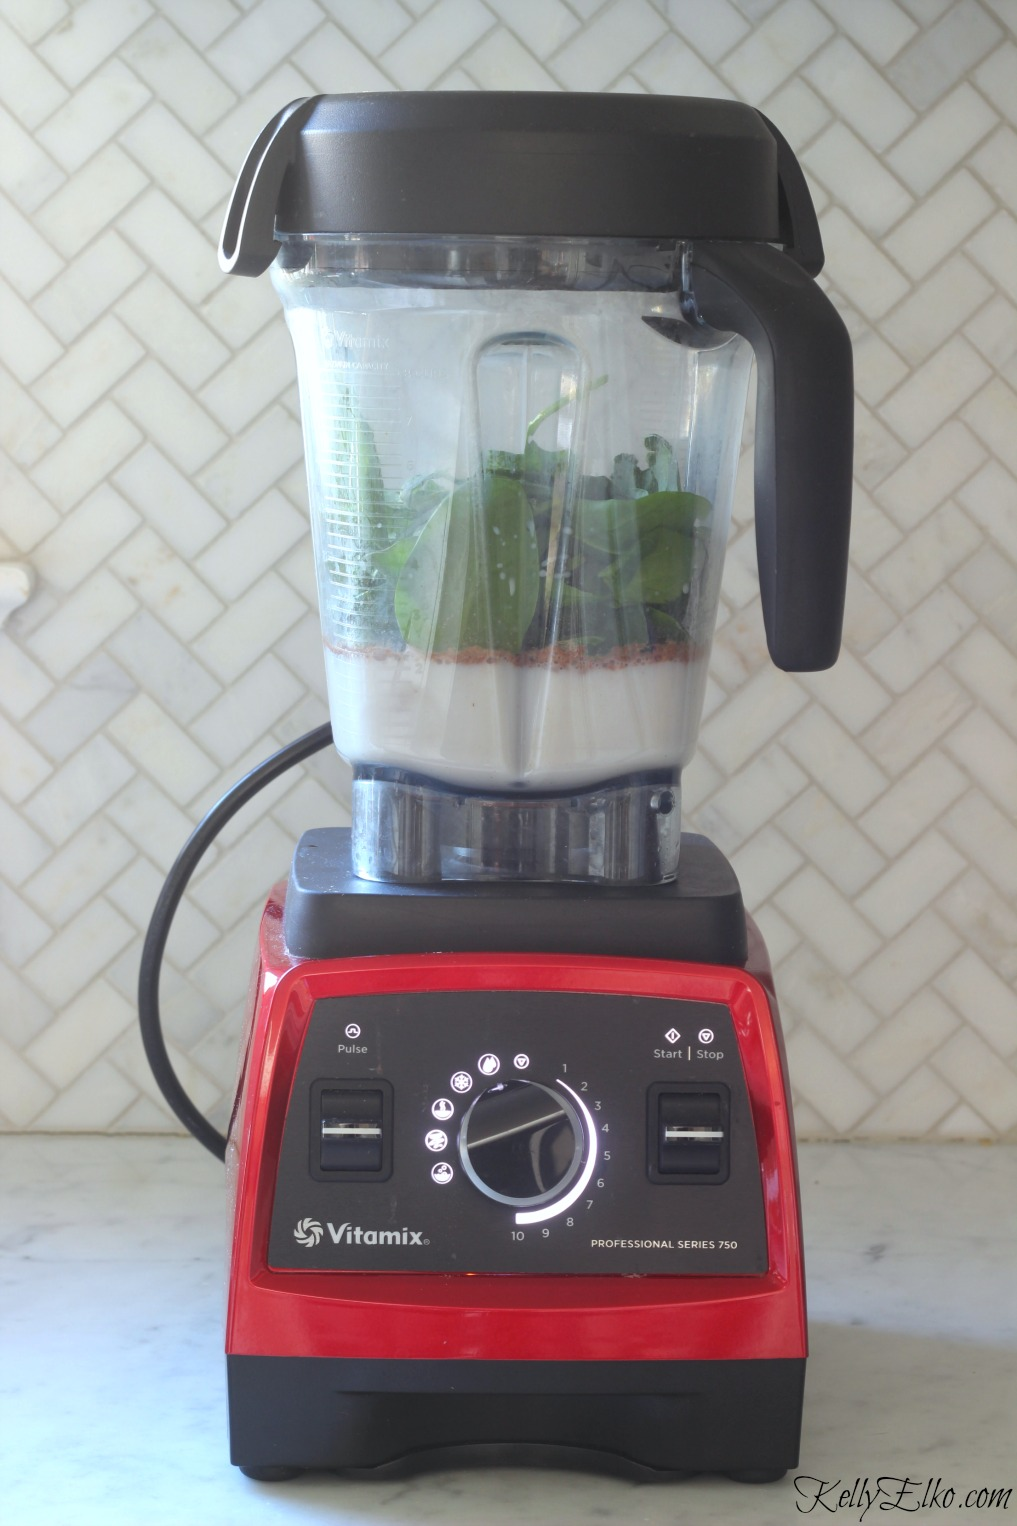 I love my Vitamix for making the smoothest lump free smoothies kellyelko.com